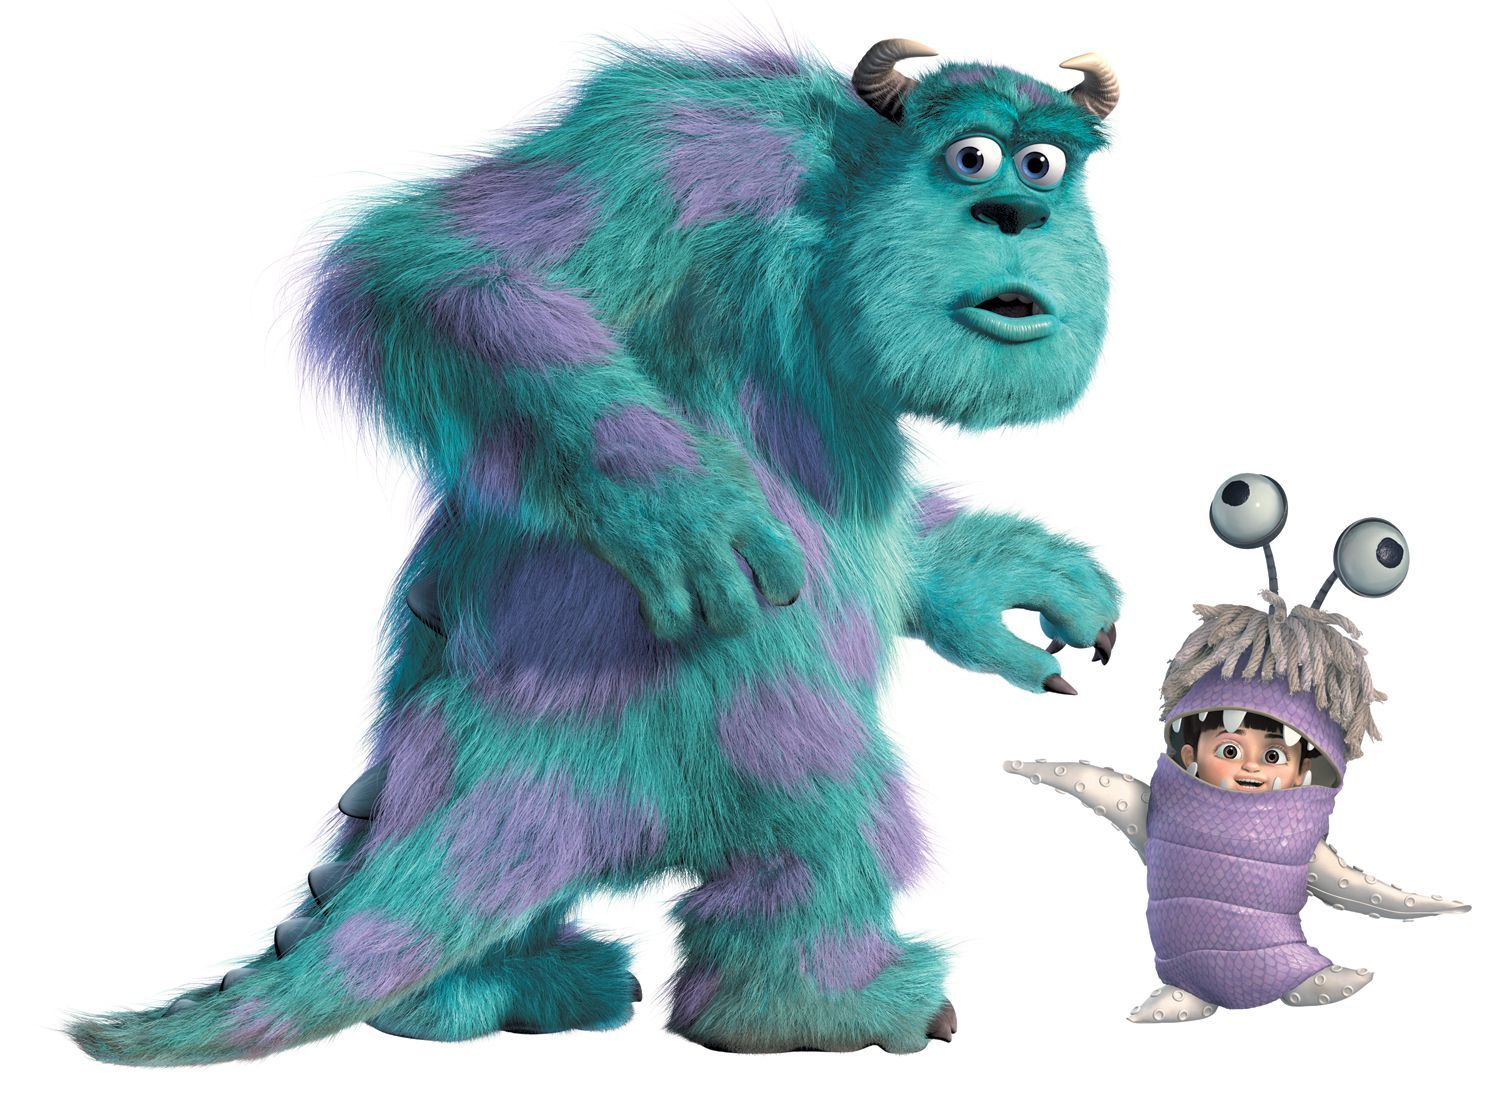 Uncategorized Sulley Mike And Boo pin by vita on animation for illustration pinterest roommates monsters giant sully and boo peel stick wall decals